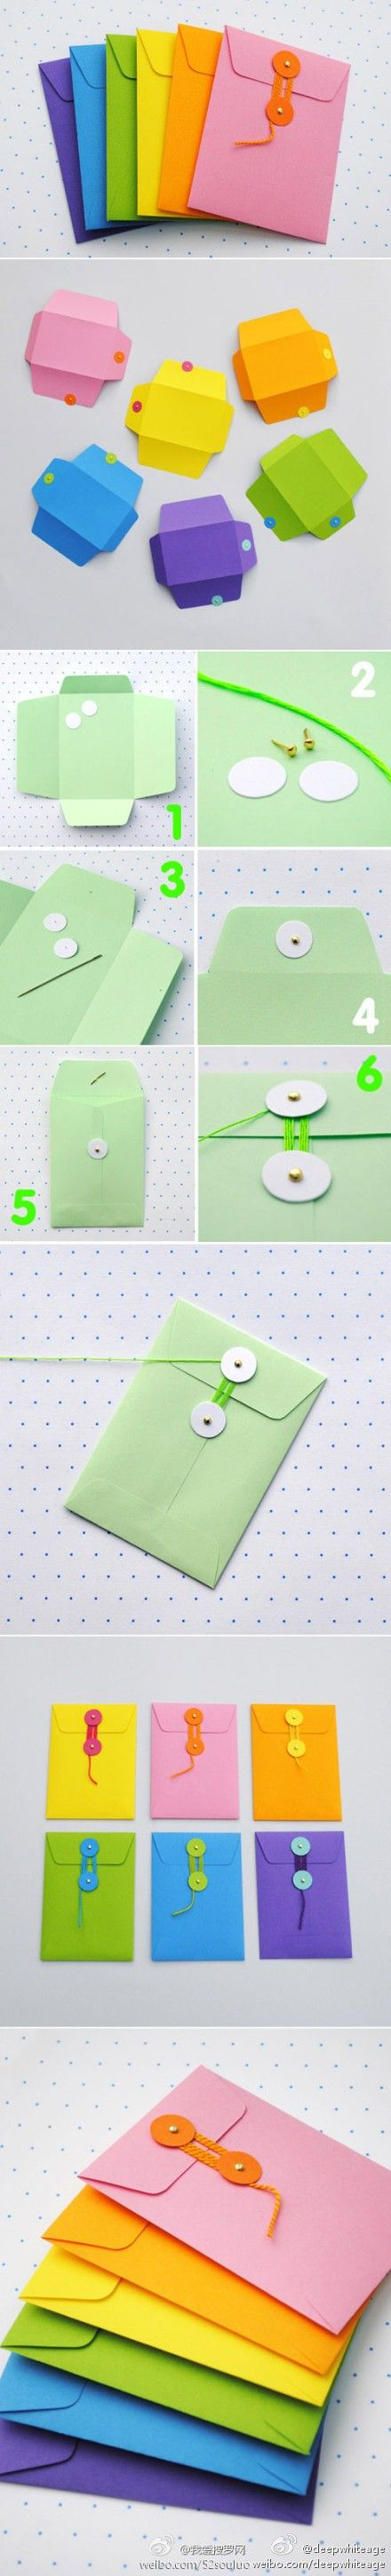 String tie envelopes how to                                                                                                                                                                                 More